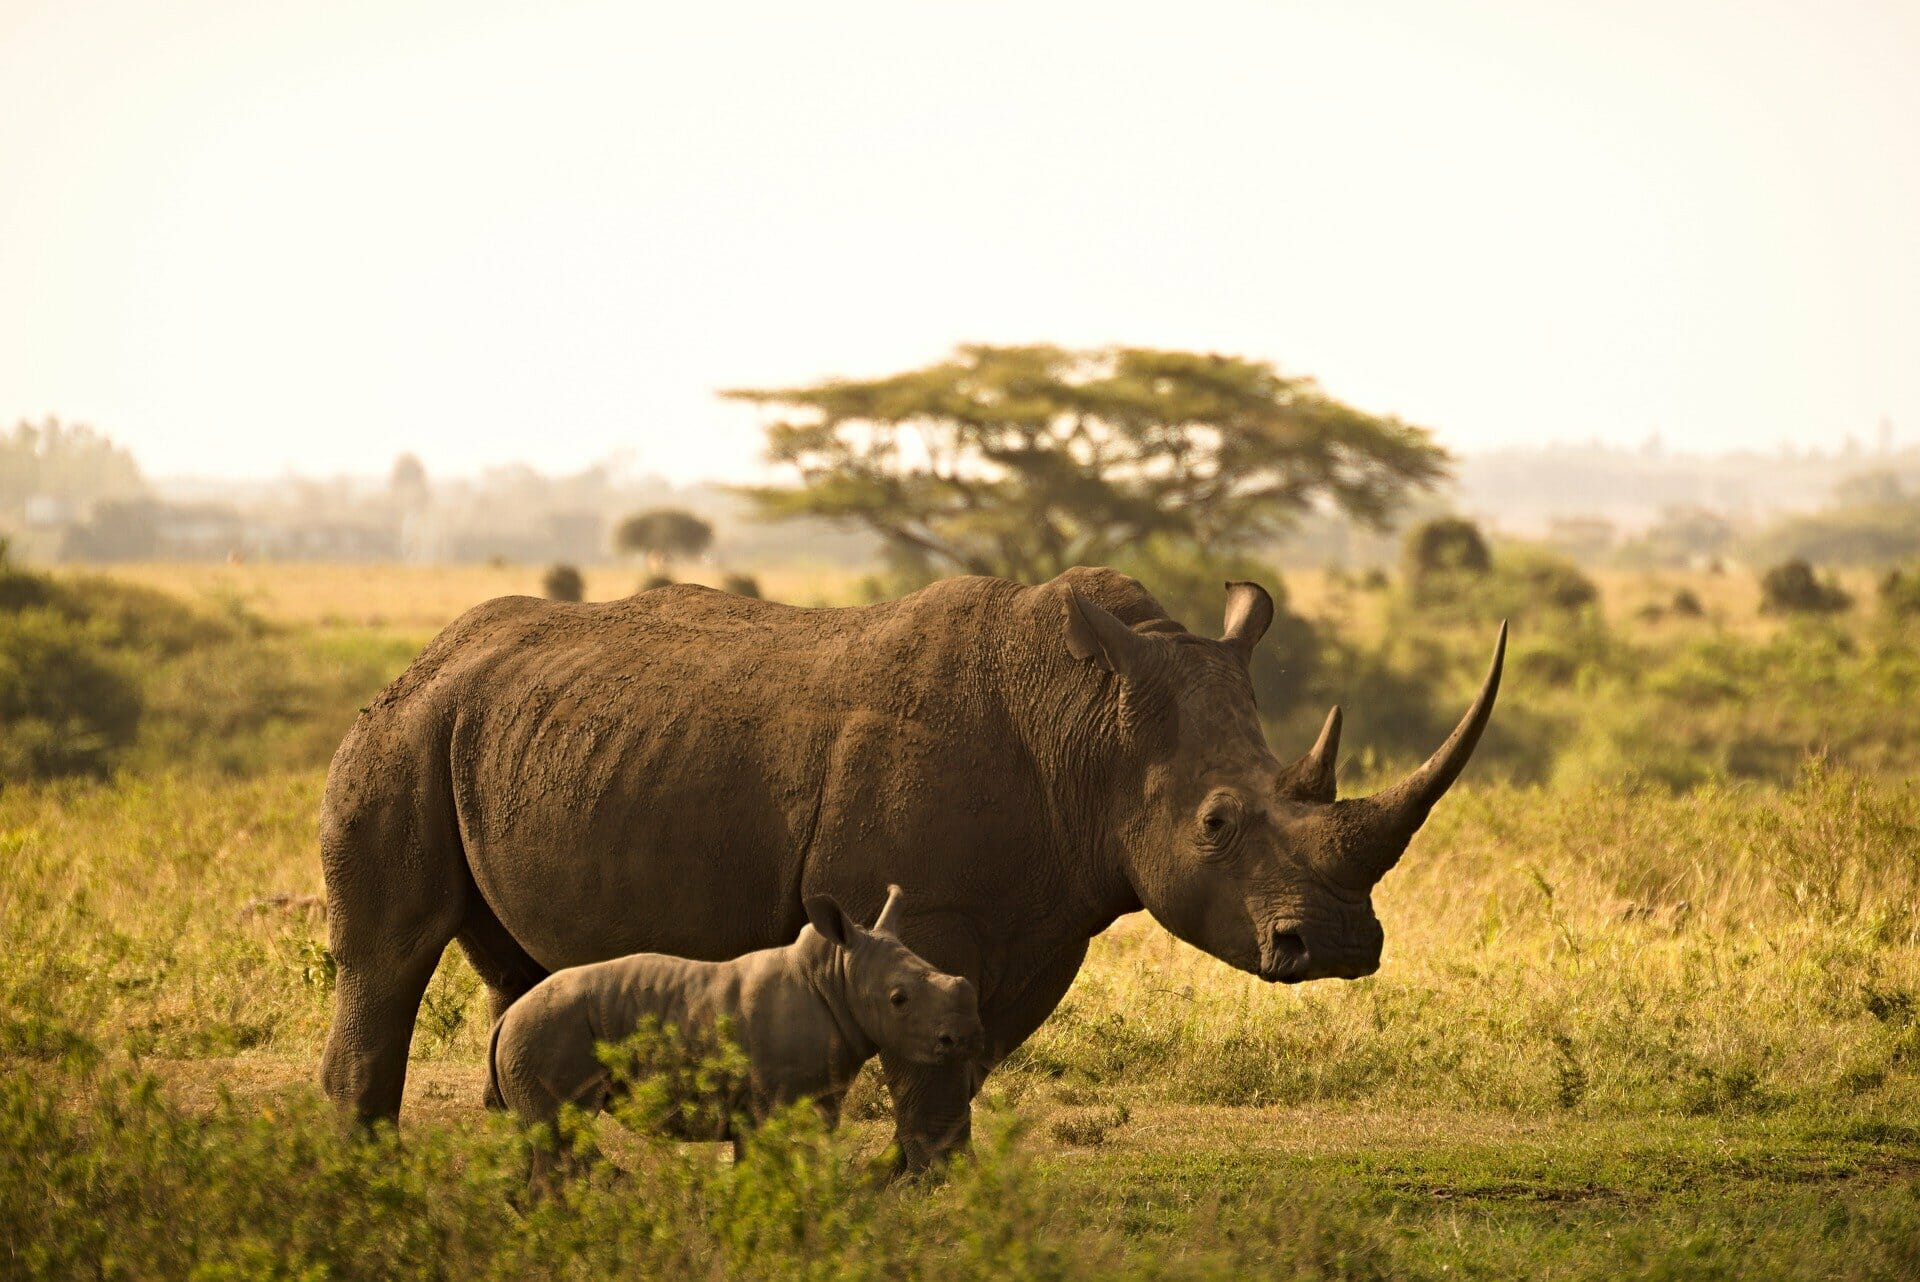 A rhino stands with her baby in Africa